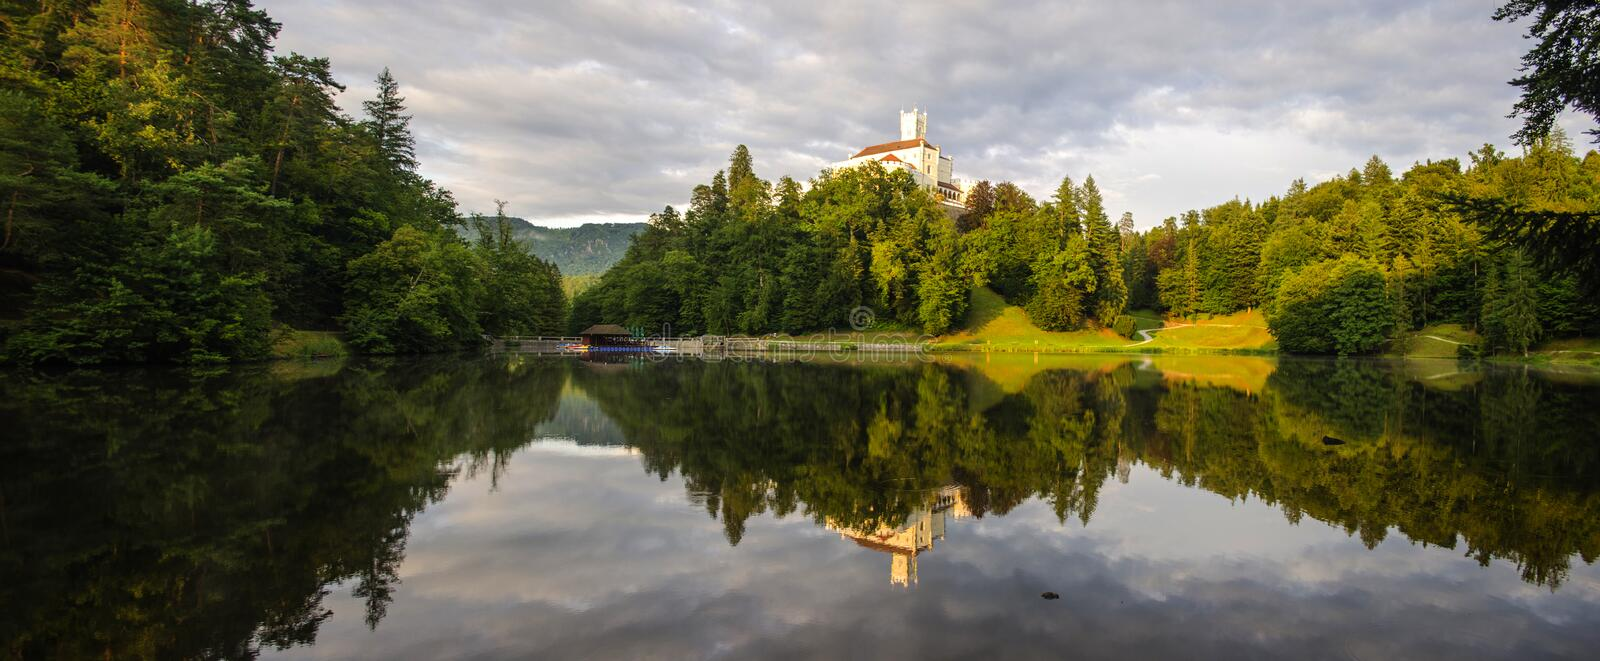 The picturesque landscape with a Trakoscan castle, Croatia. The revival of the castle of Trakoščany began in the second half of the 19th royalty free stock photos